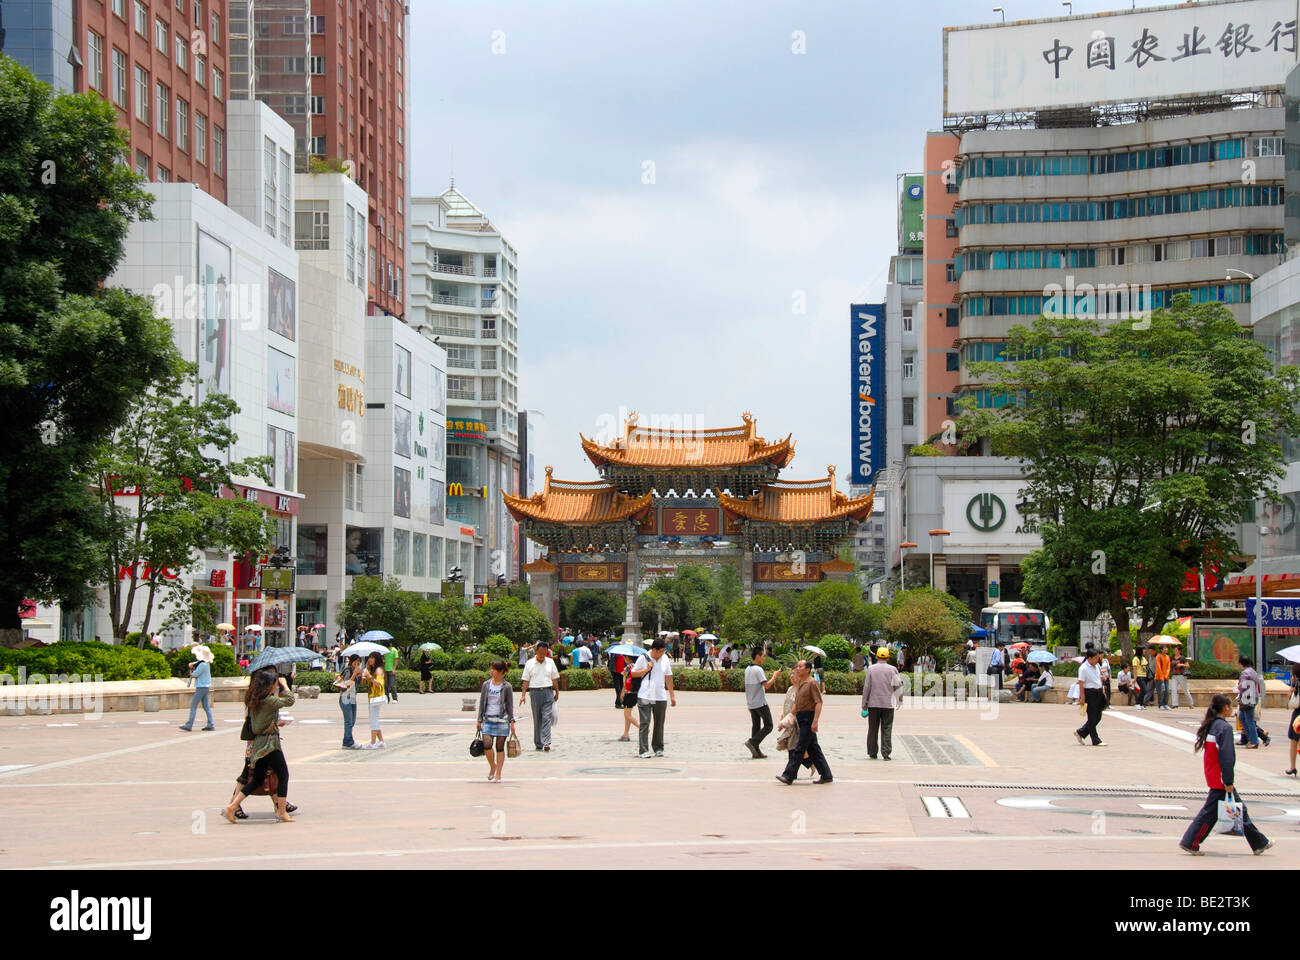 Busy pedestrian zone in the modern city center, Kunming, Yunnan Province, People's Republic of China, Asia - Stock Image